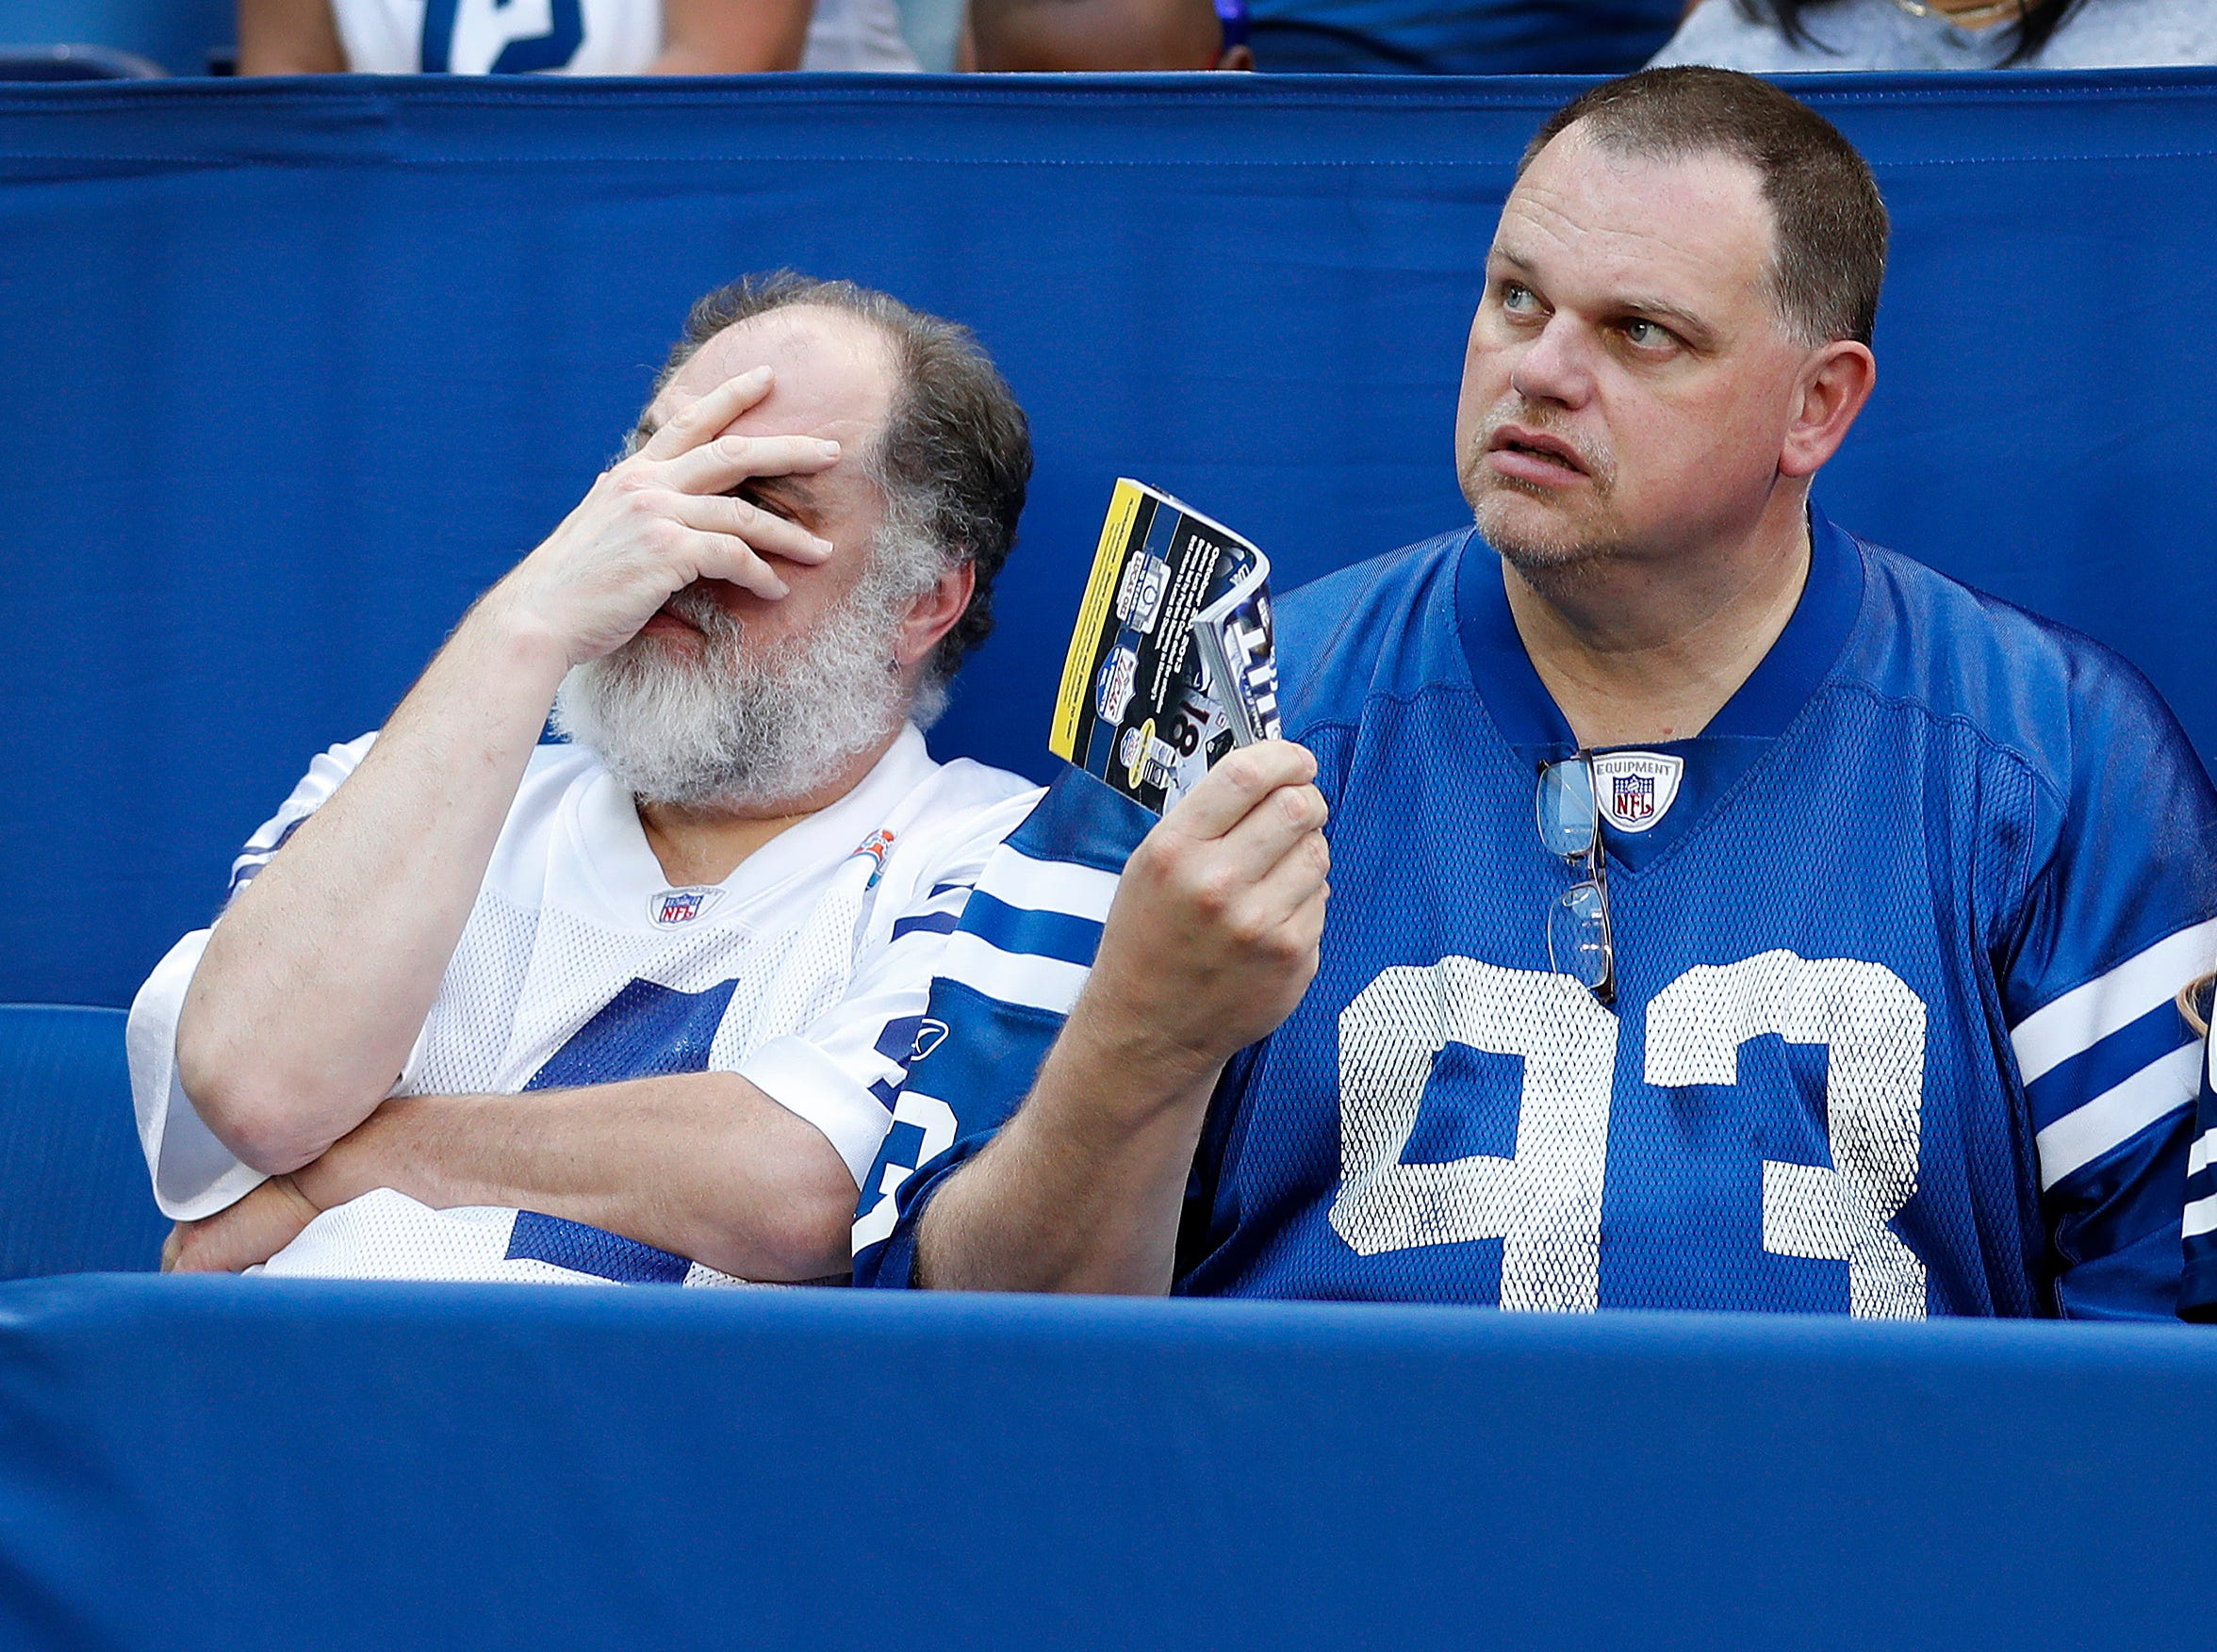 Dejected Colts fans late in the second half of their game on Sunday, Sept. 30, 2018. The Indianapolis Colts lost 37-34 in overtime to the Houston Texans.